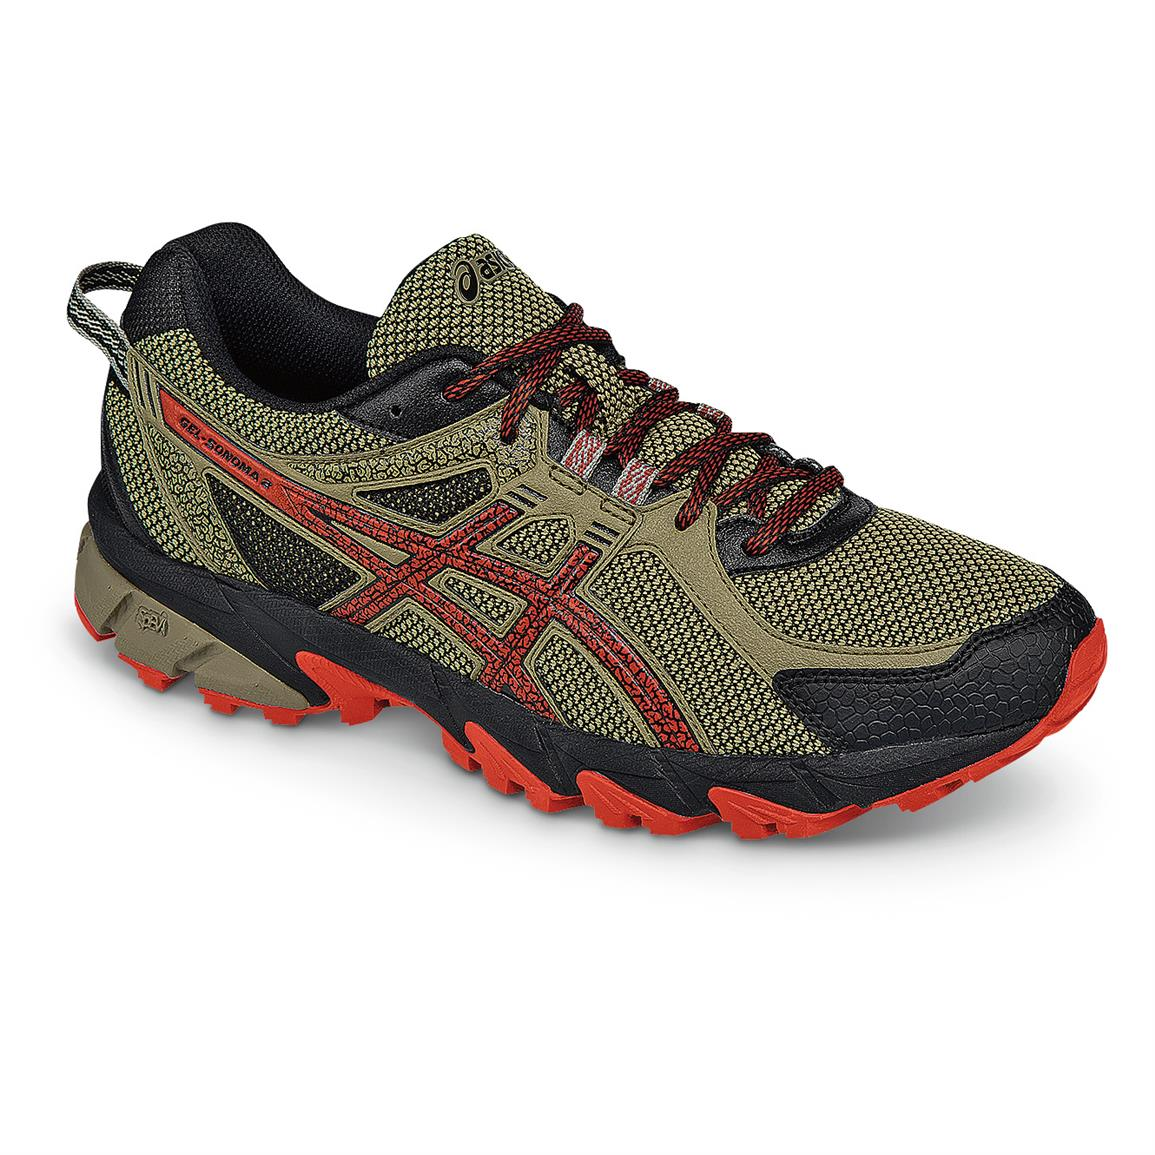 ASICS Men's GEL-Sonoma 2 Running Shoes, Bark / Orange / Black